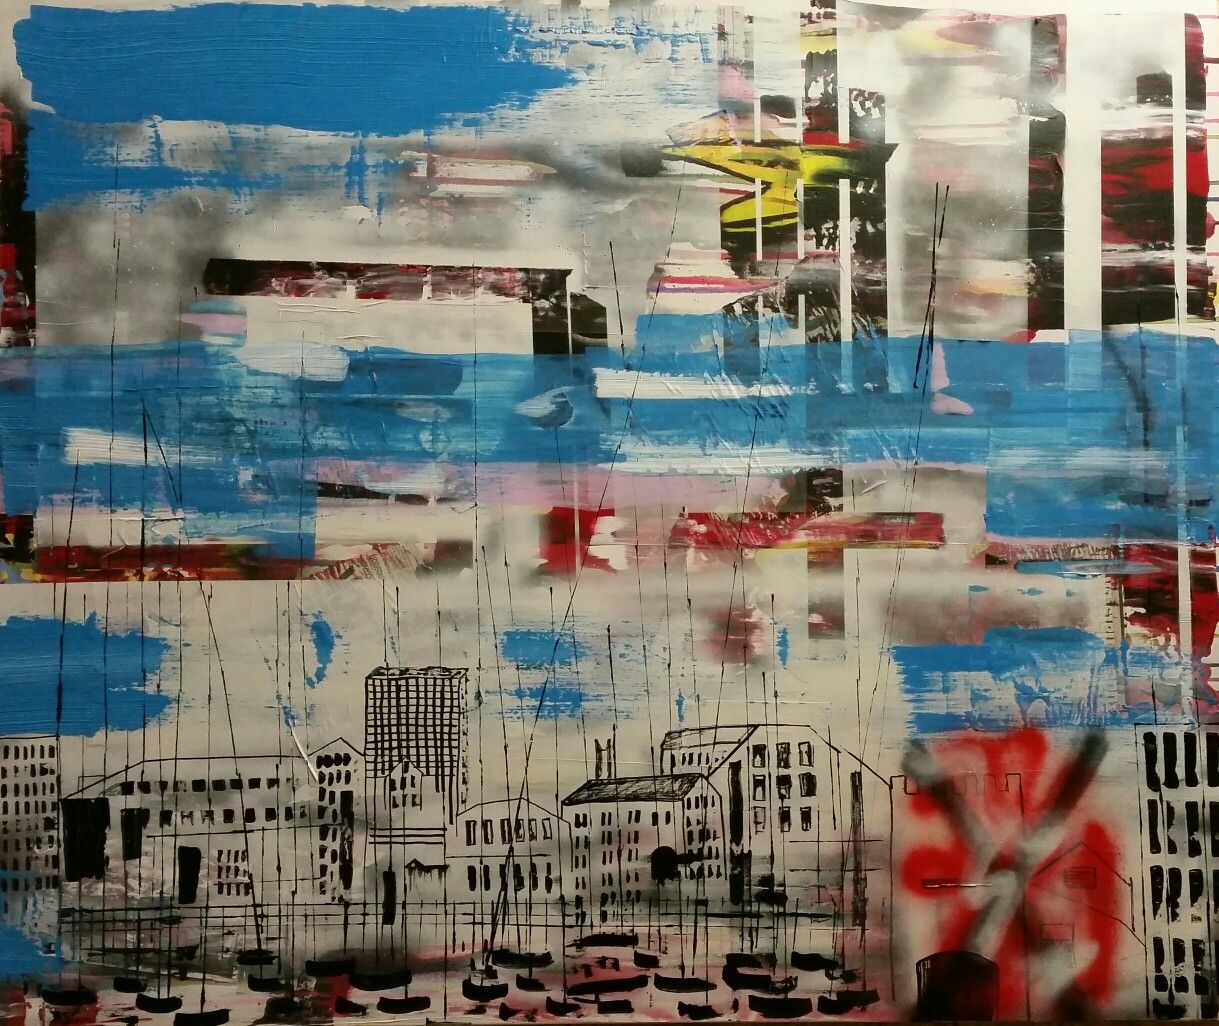 Abstract City Scape Painting... The Cooperage in Plymouth... once a popular live music venue now stands empty and derelict